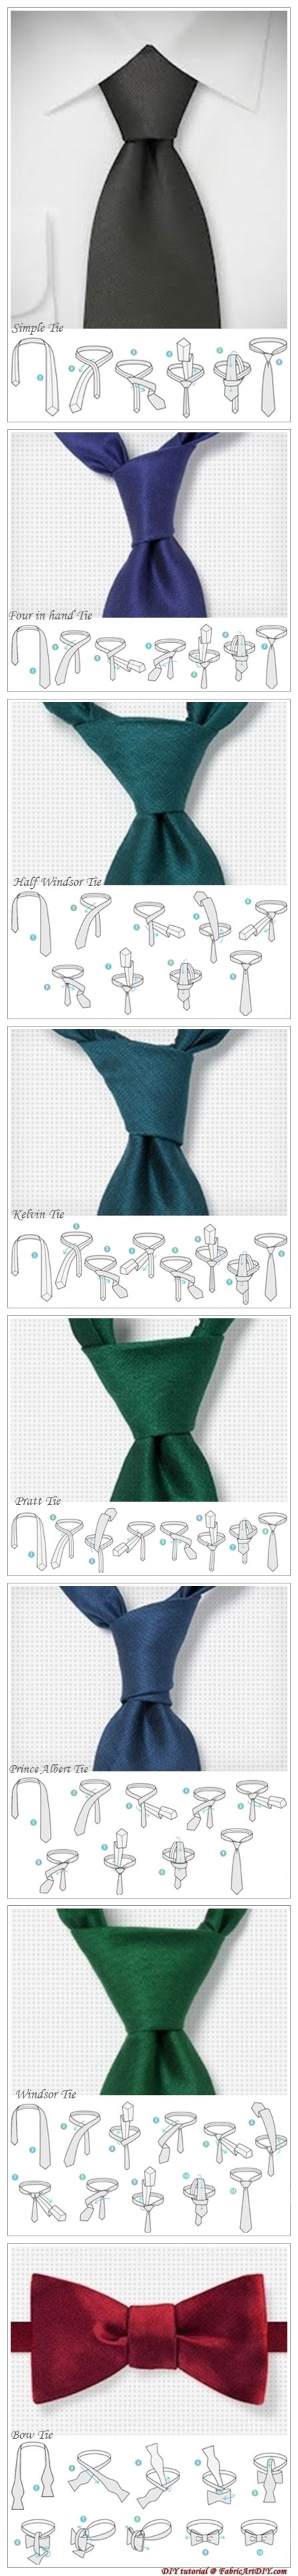 Classic tie knot instructions. Get your ties at www.getelegante.com